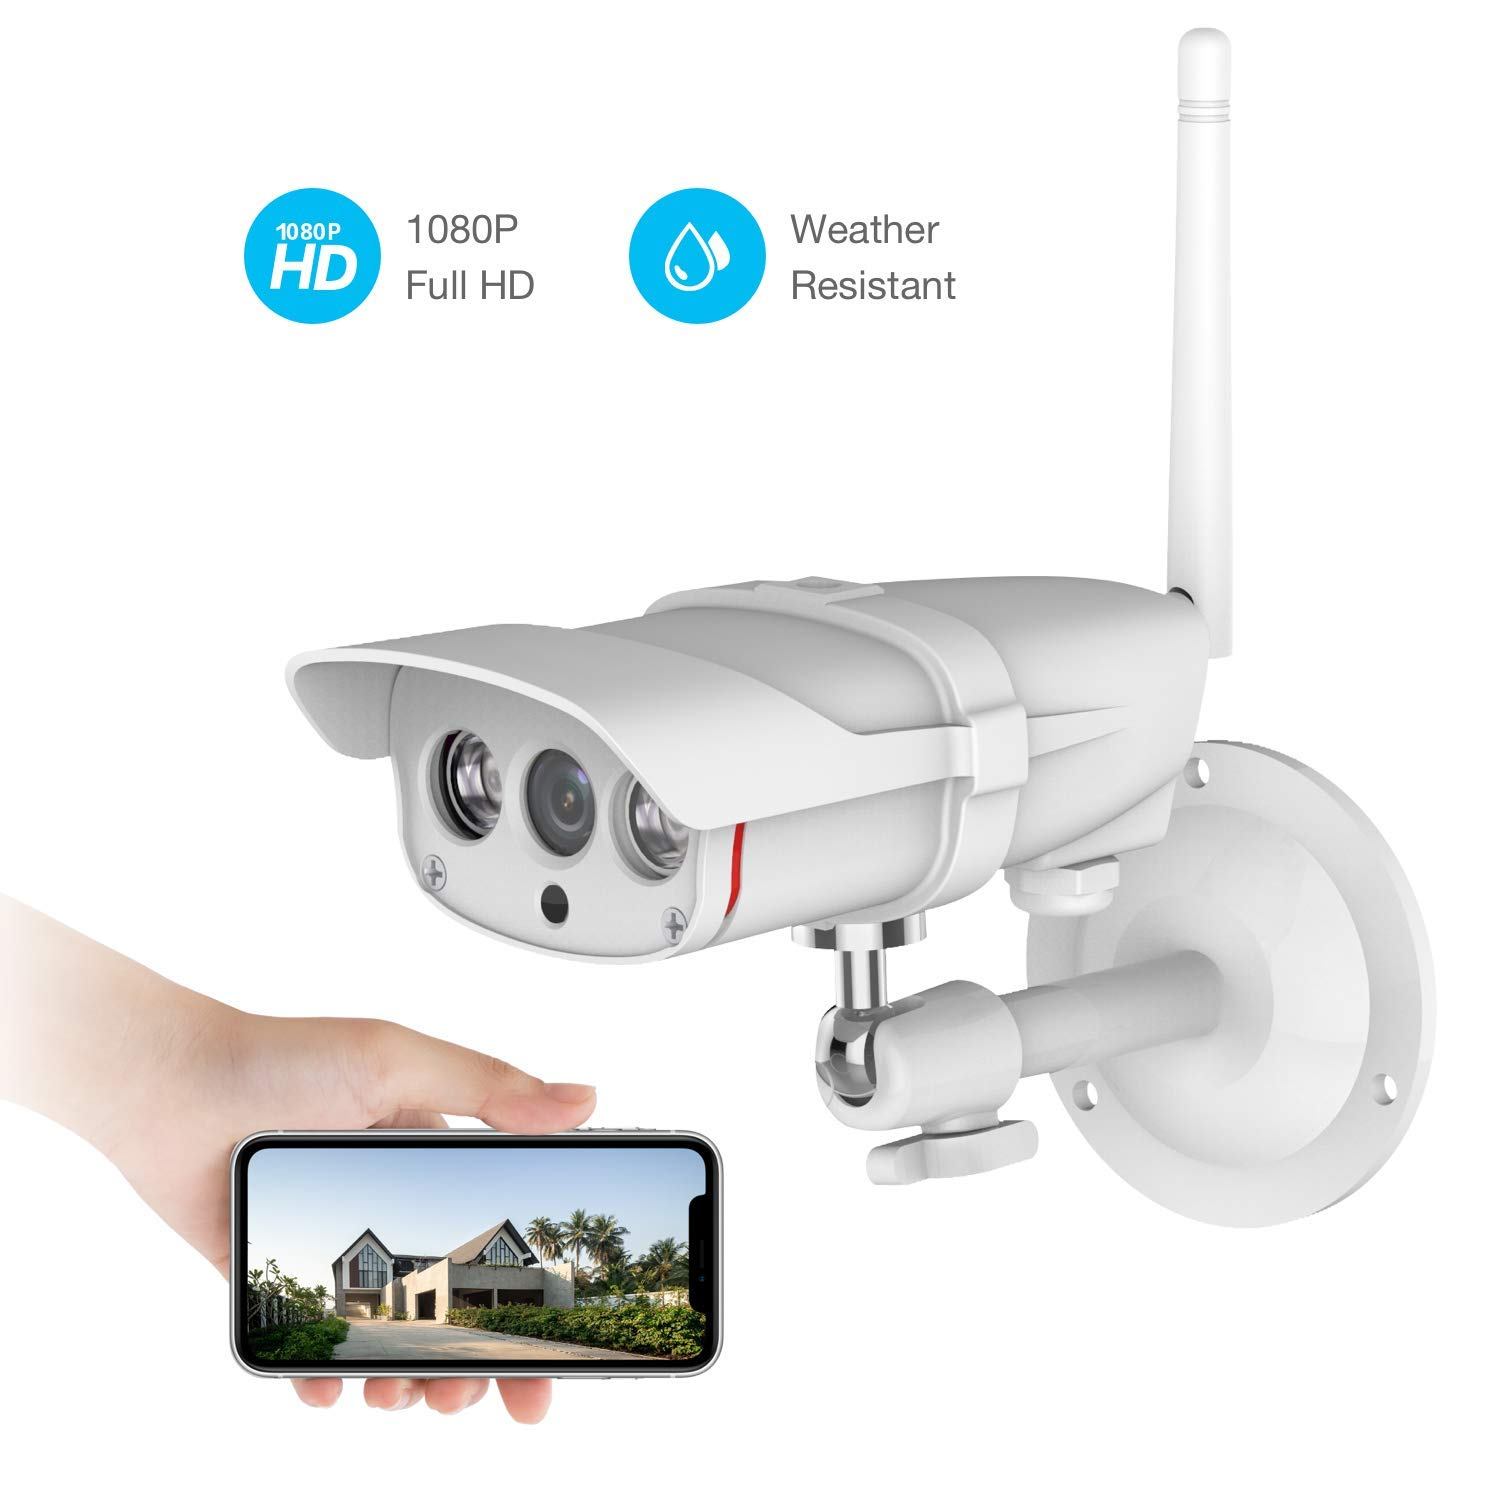 Outdoor Security Camera, Wonbo FHD 1080P Wireless IP Camera 2.4G WIFI Camera with IP67 Waterproof IR Night Vision Motion Detection Home Security Surveillance Camera System, iOS/Android